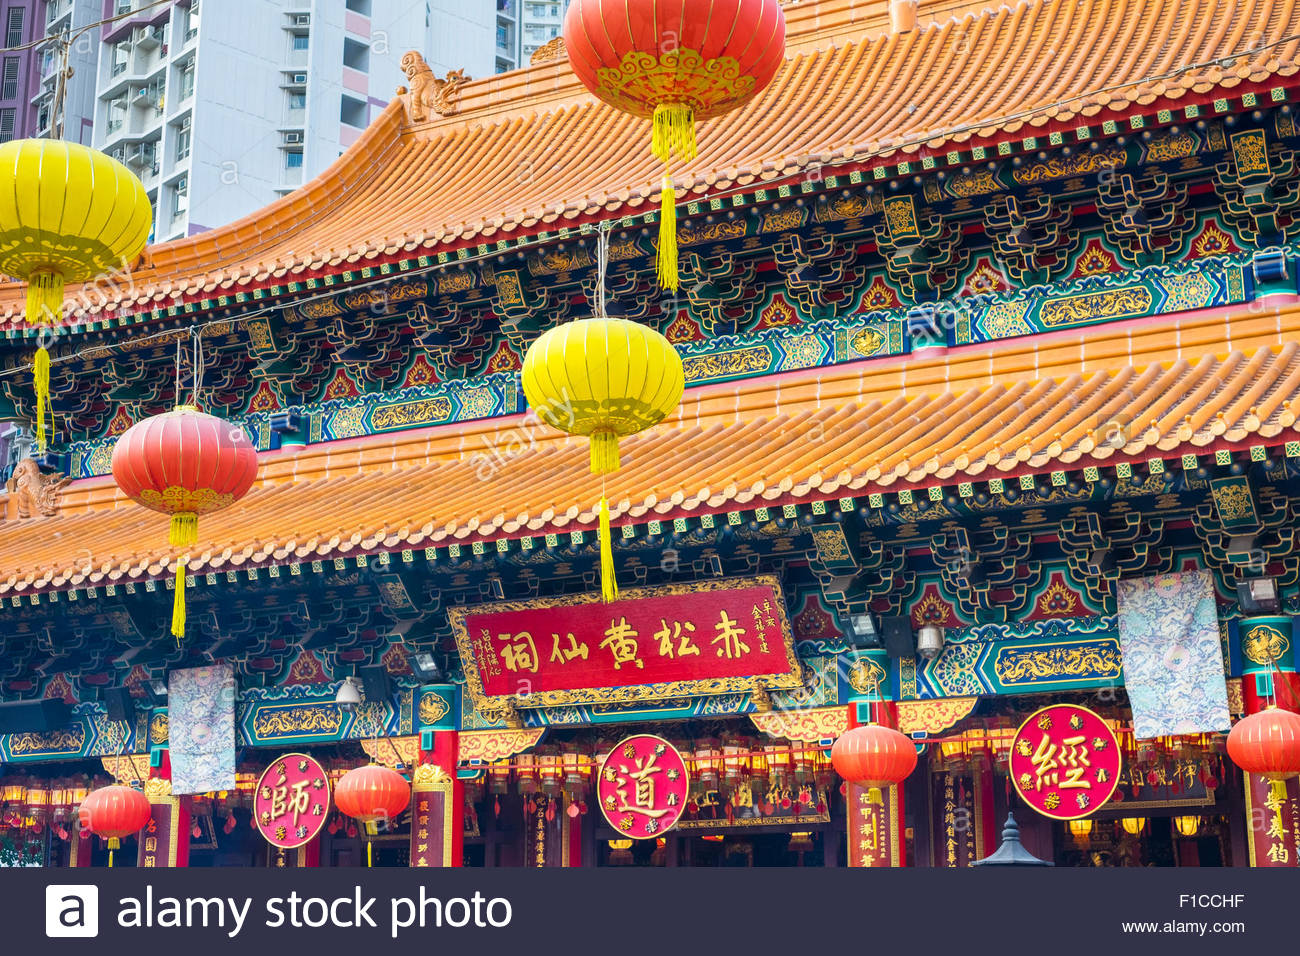 Main altar house of Wong Tai Sin (Sik Sik Yuen) Temple, Wong Tai Sin district, Kowloon, Hong Kong, China - Stock Image